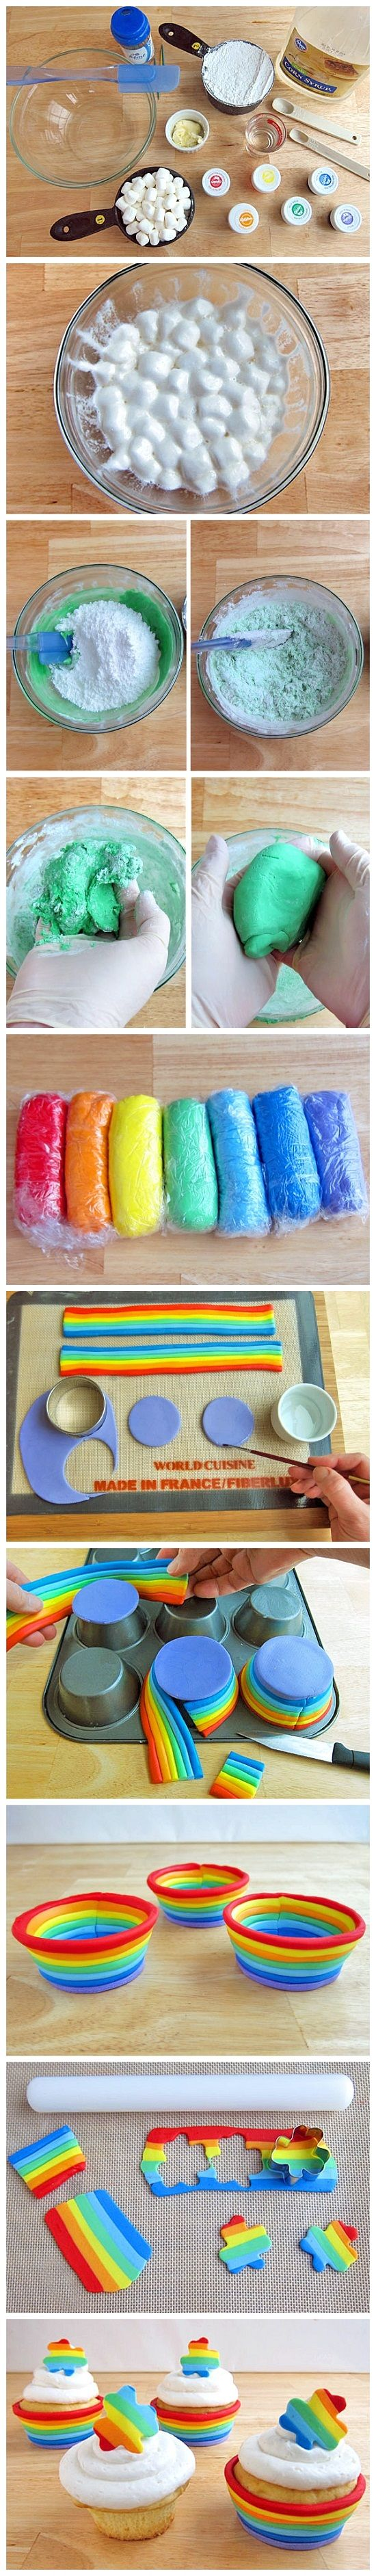 Edible Fondant Rainbow Cupcake Wrappers Recipe and How-To